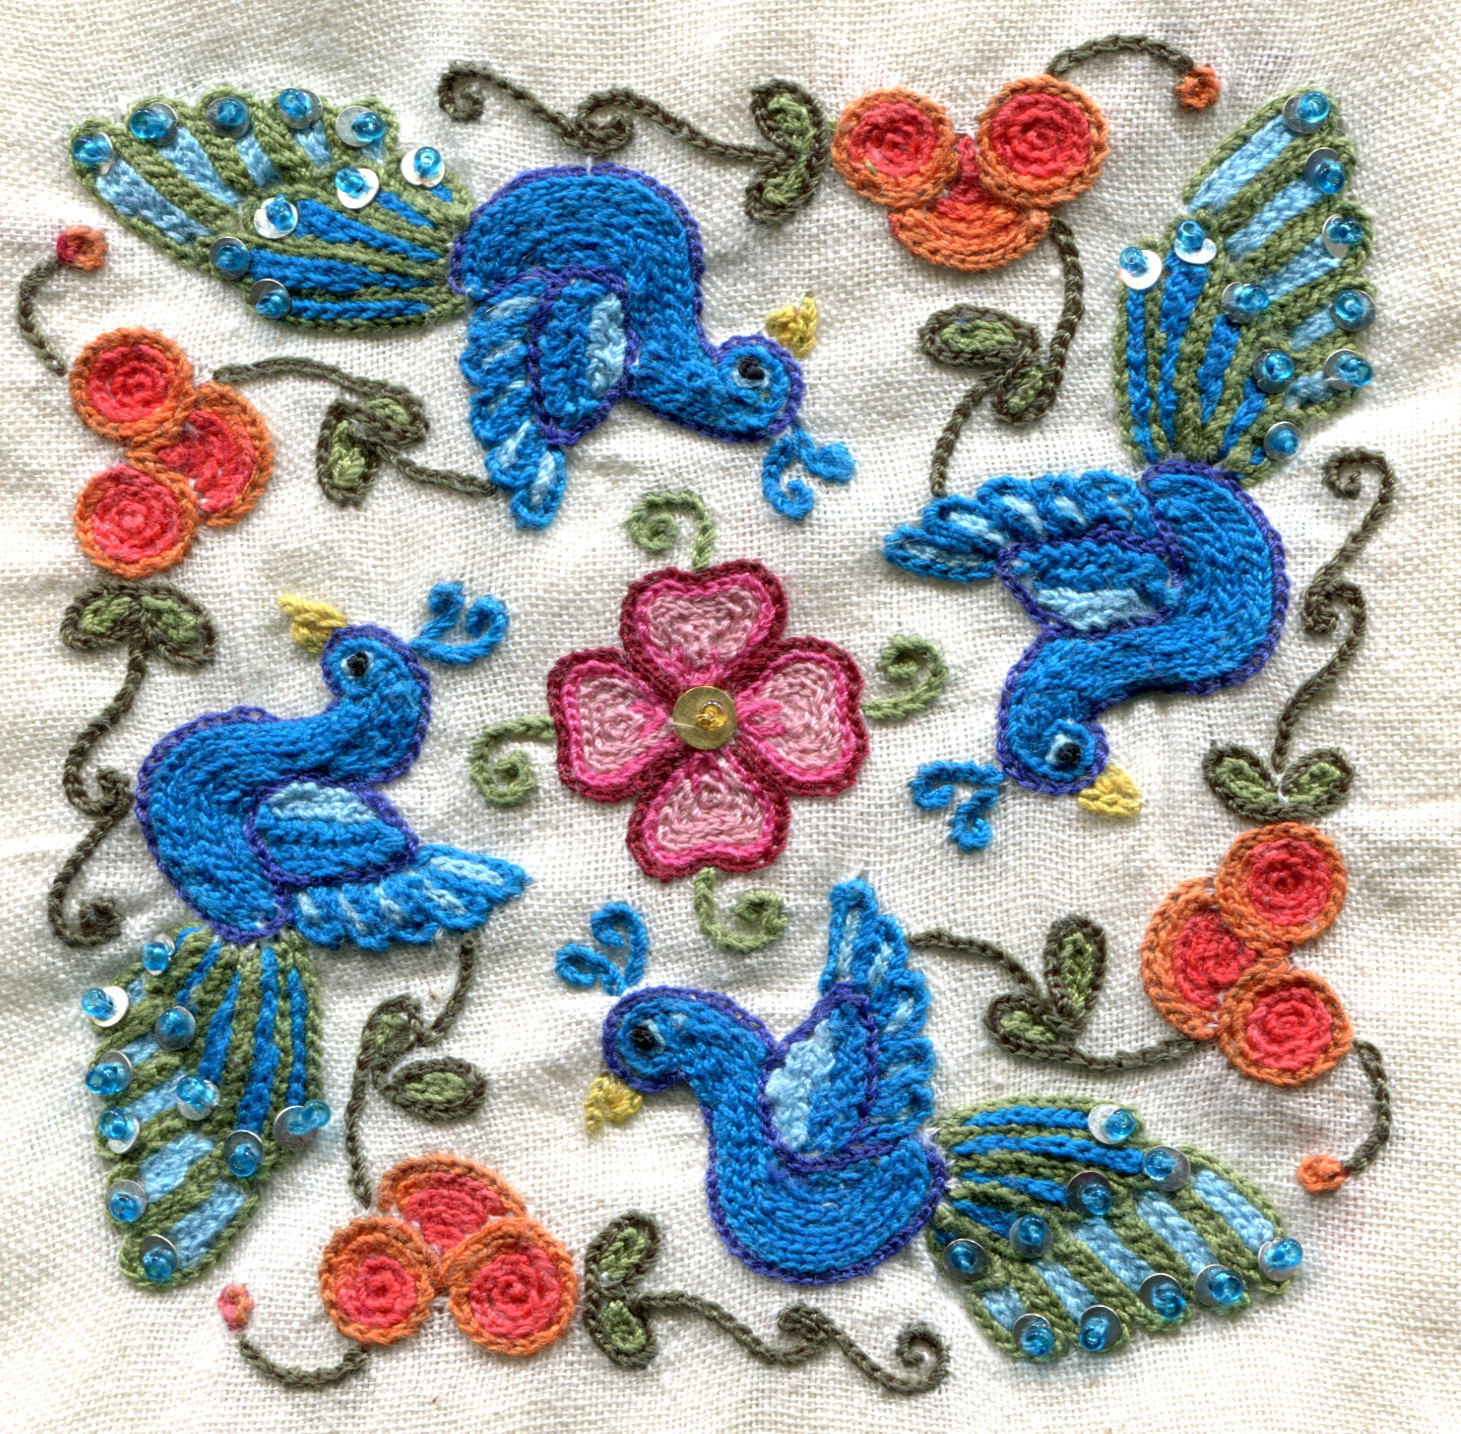 The Tempests In My Teacup Tambour Embroidery Part 2 Practice